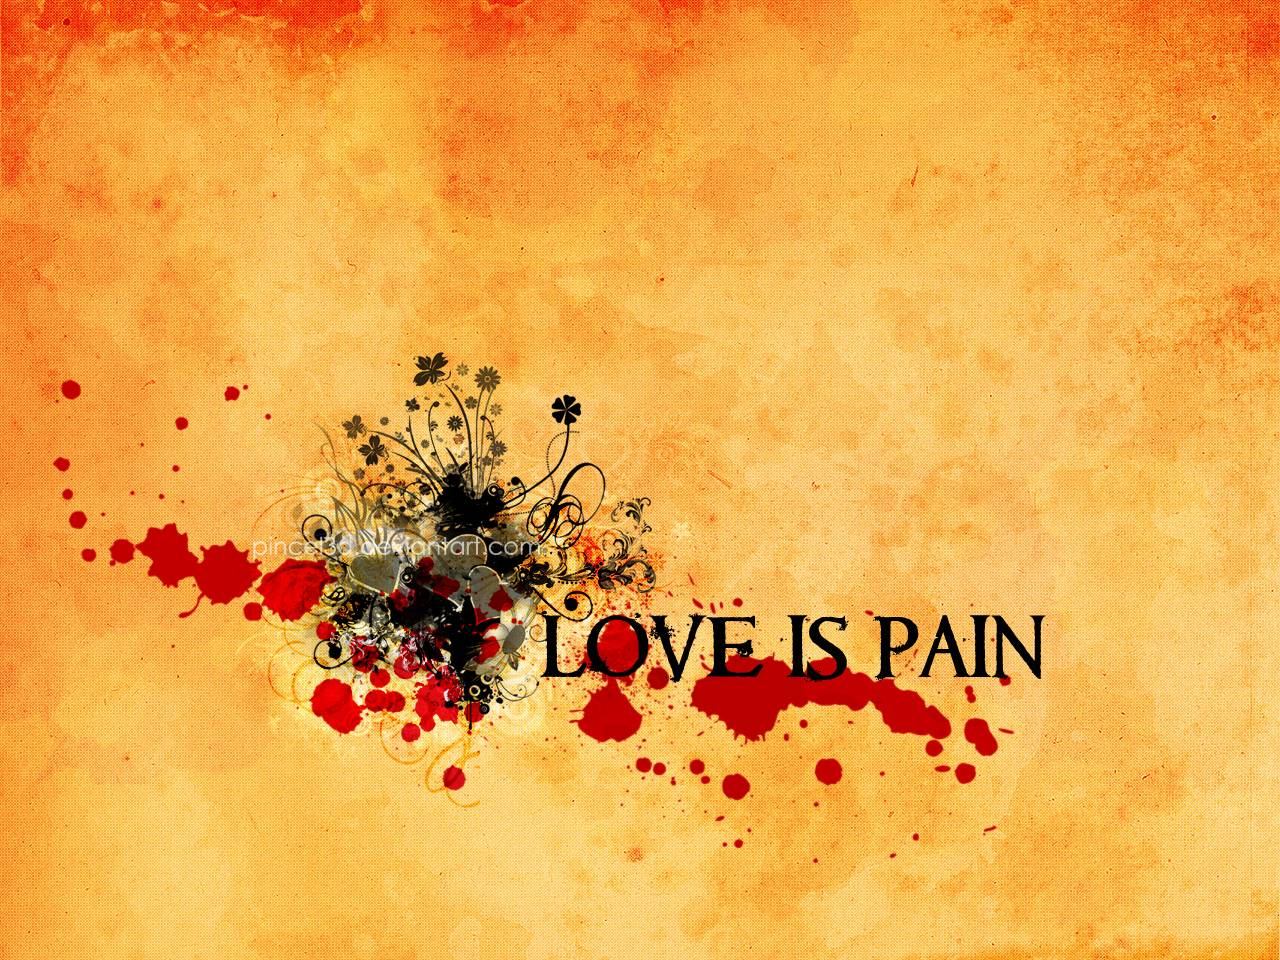 Love Pain Wallpapers - Wallpaper cave